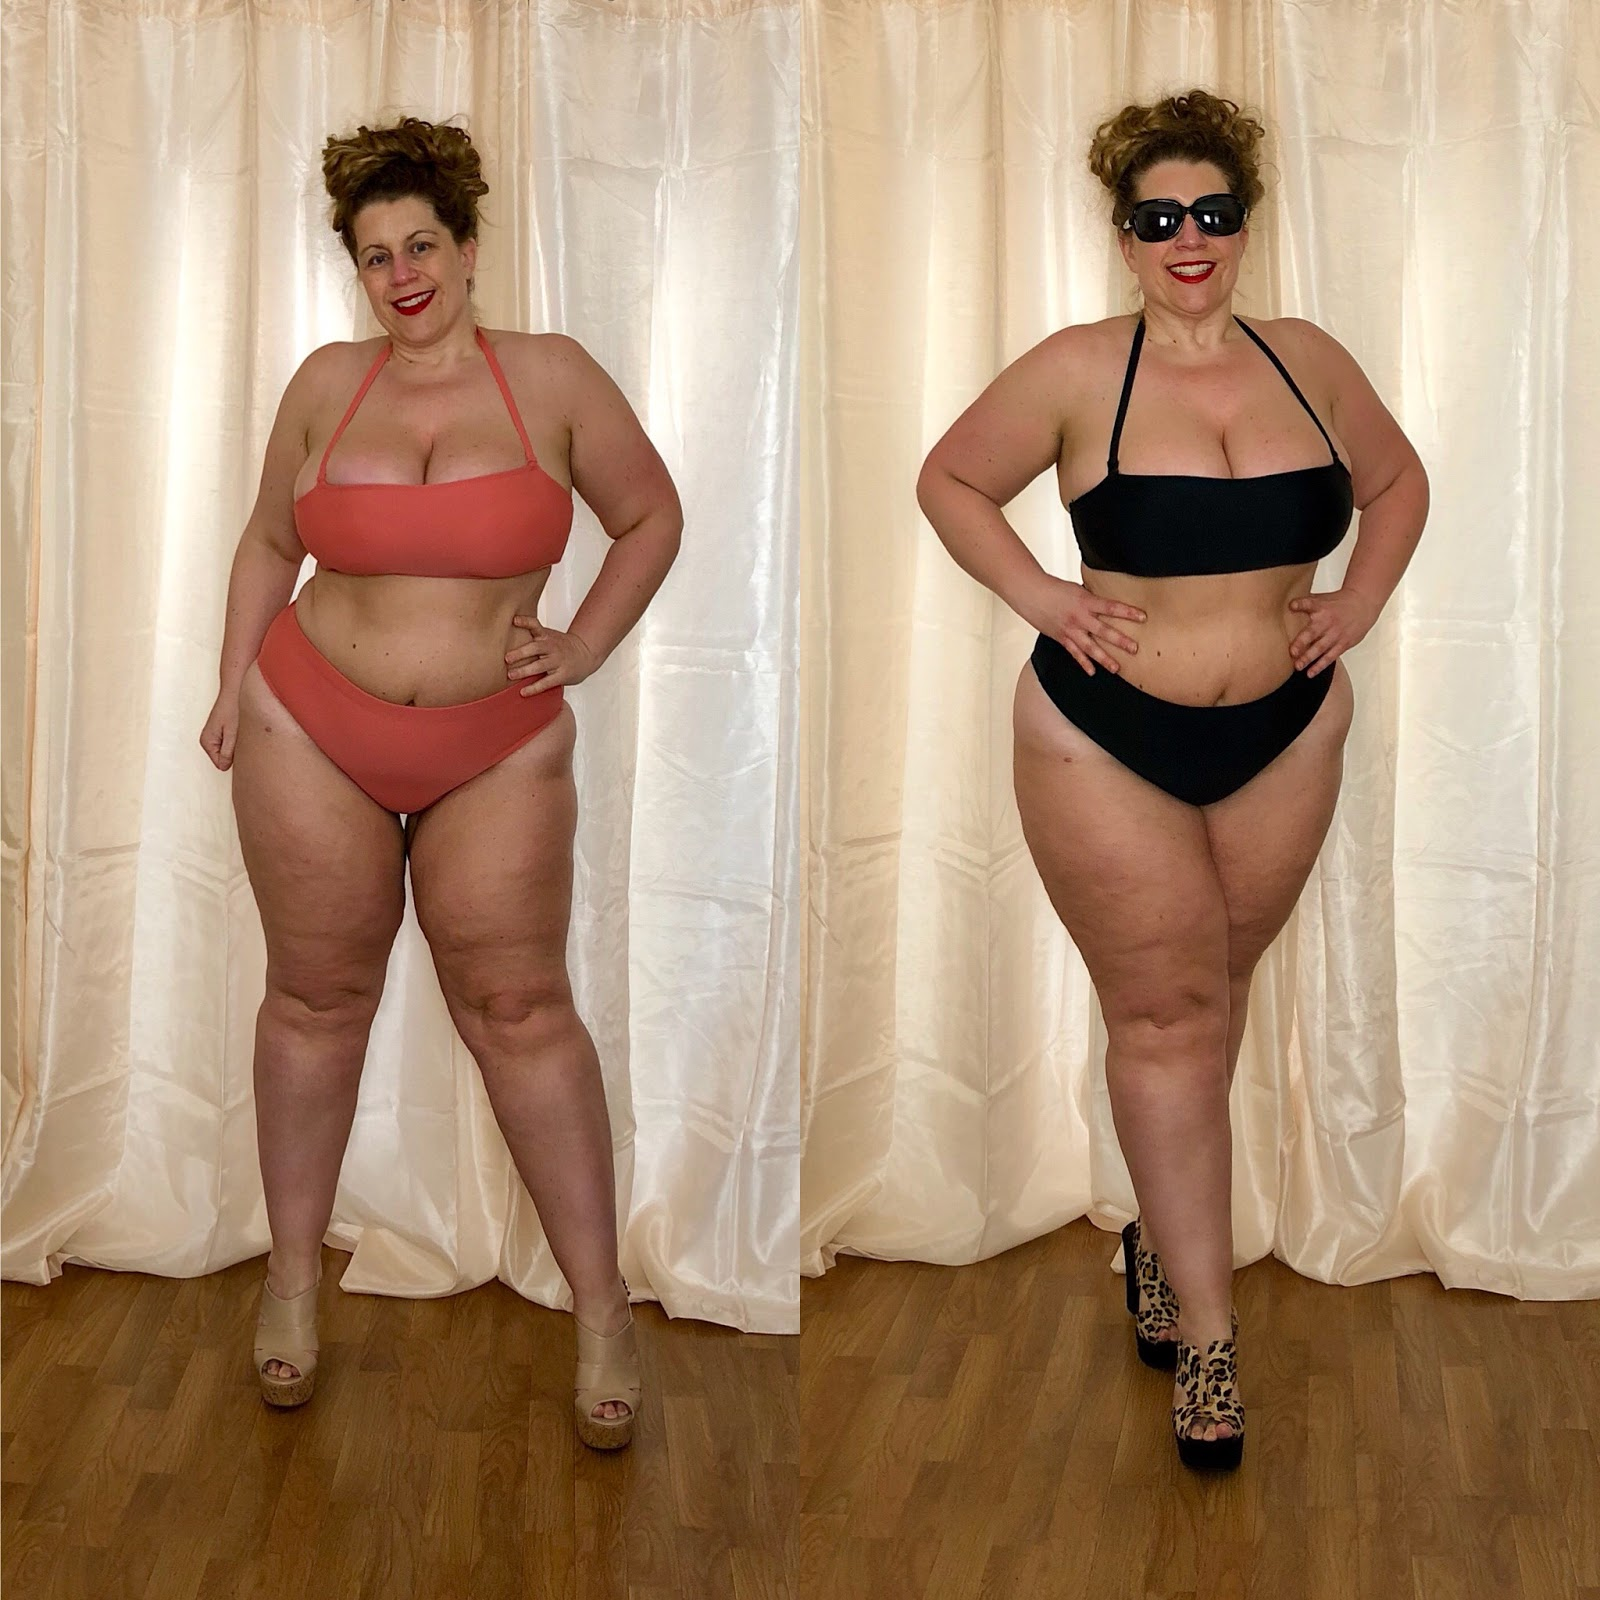 5584f41d4e Forever 21+ Swimwear 2018: Plus Size Salmon/Black Bikini Top and ...